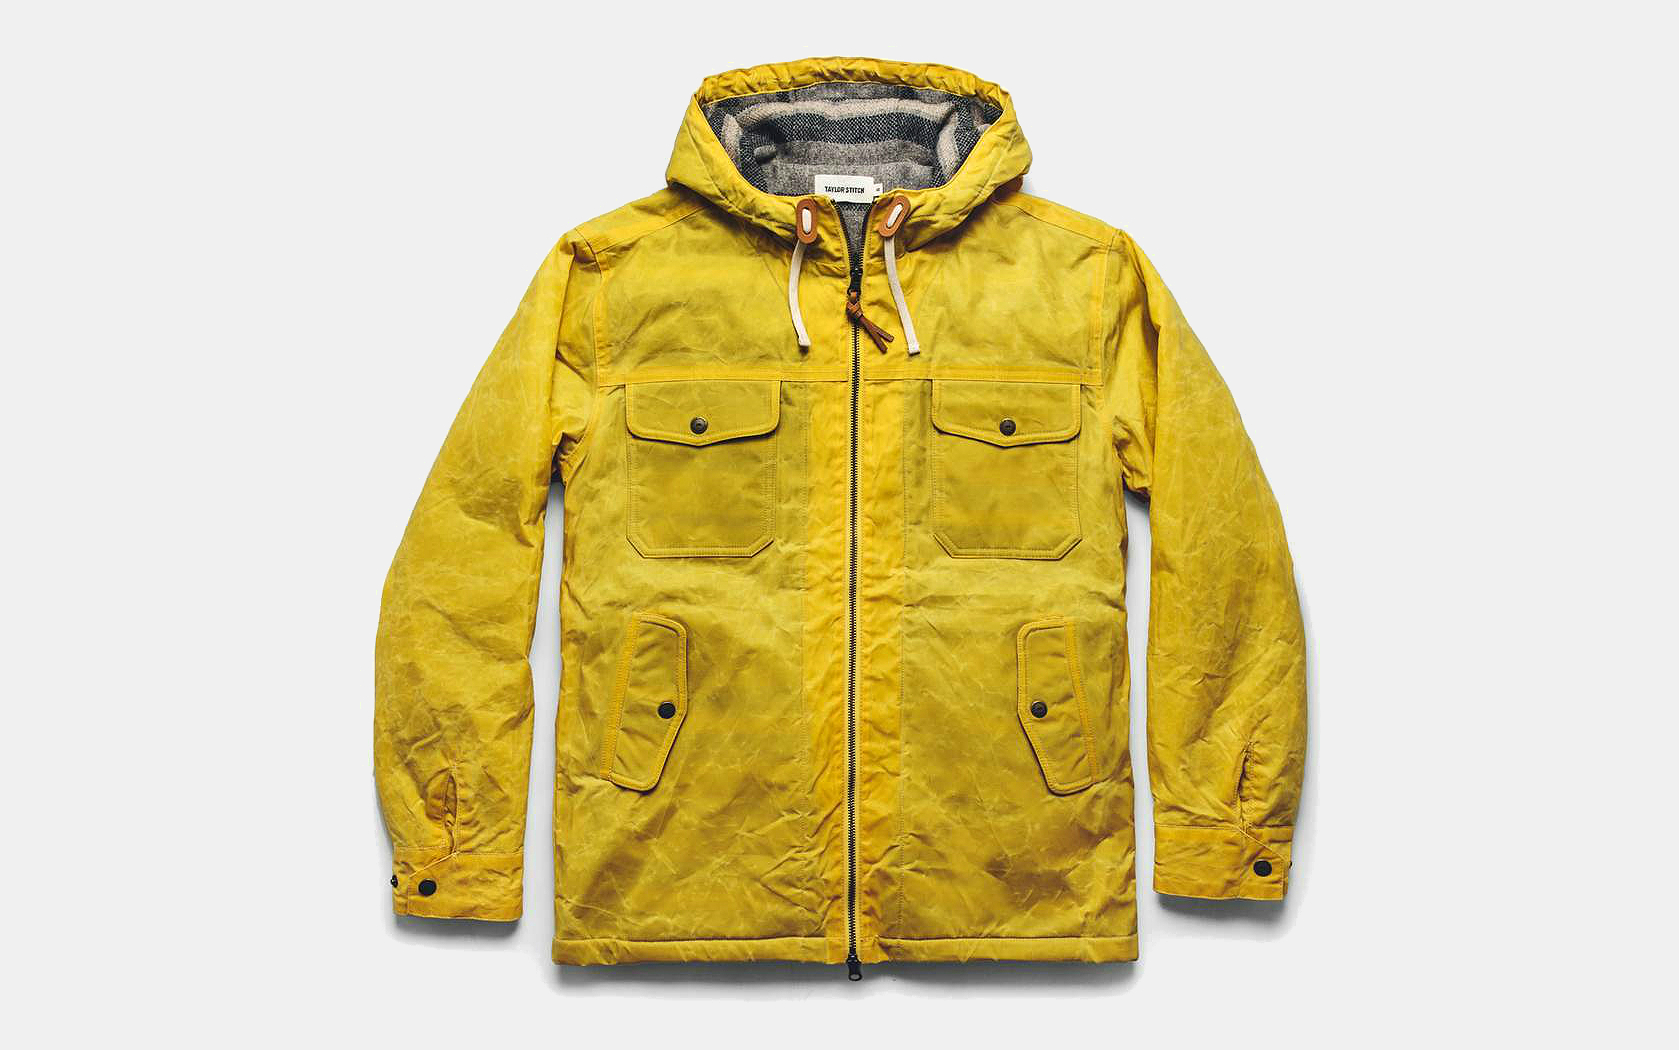 Taylor Stitch Winslow Parka in Mustard Waxed Canvas